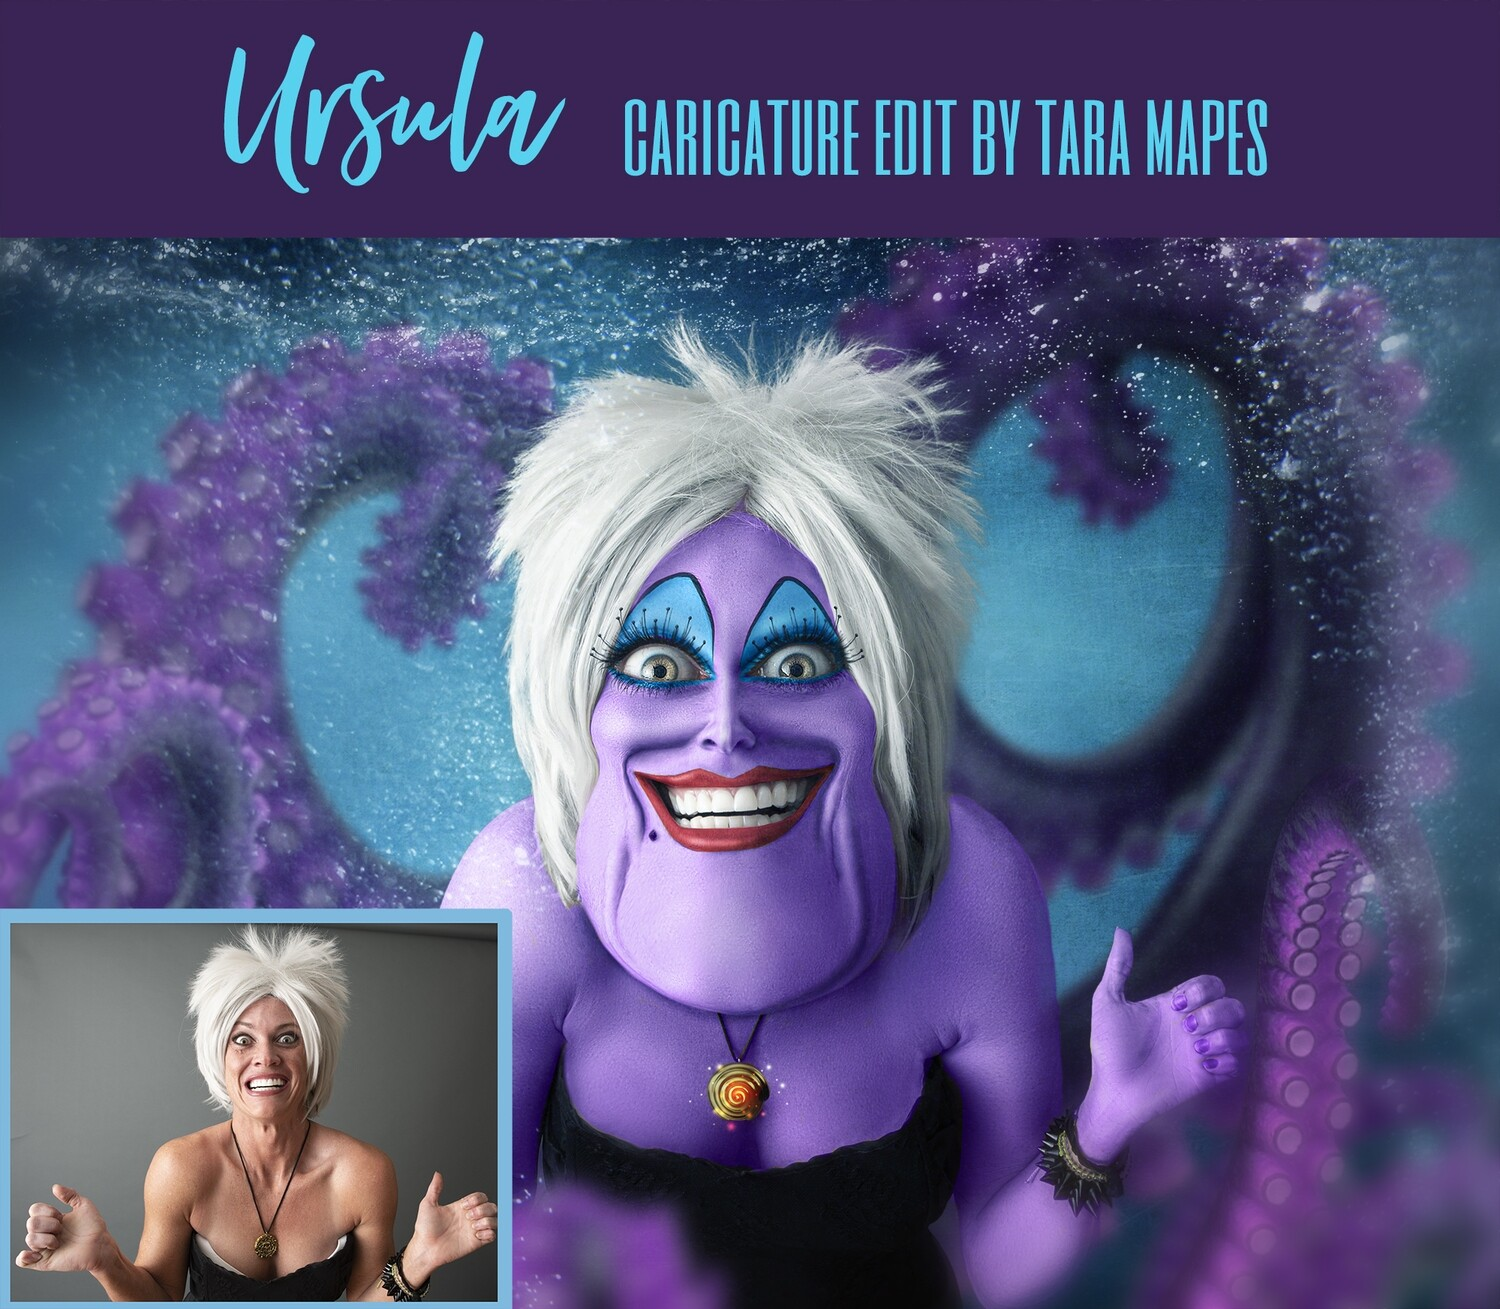 Ursula Caricature Tutorial by Tara Mapes - Photomanipulation Cartoon and Surreal Editing Tutorial